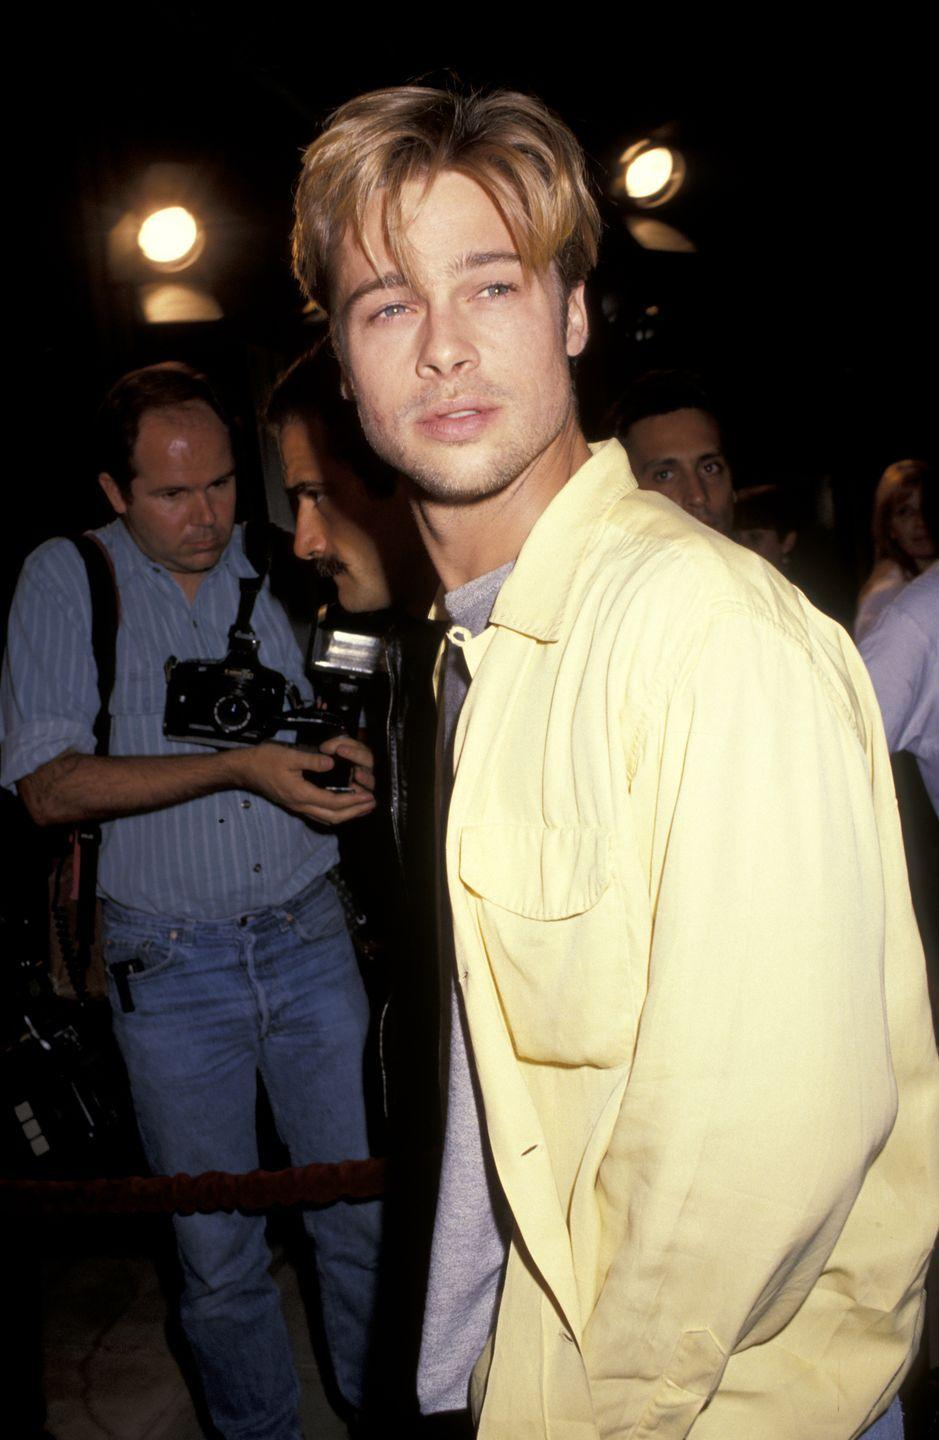 <p>Brad Pitt had his big breakthrough in the '90s, when he became a bonafide star and worldwide heartthrob thanks to films like <em>Interview with the Vampire, Legend of the Falls, </em>and<em> Seven</em>. He was basically on top of the world. </p>